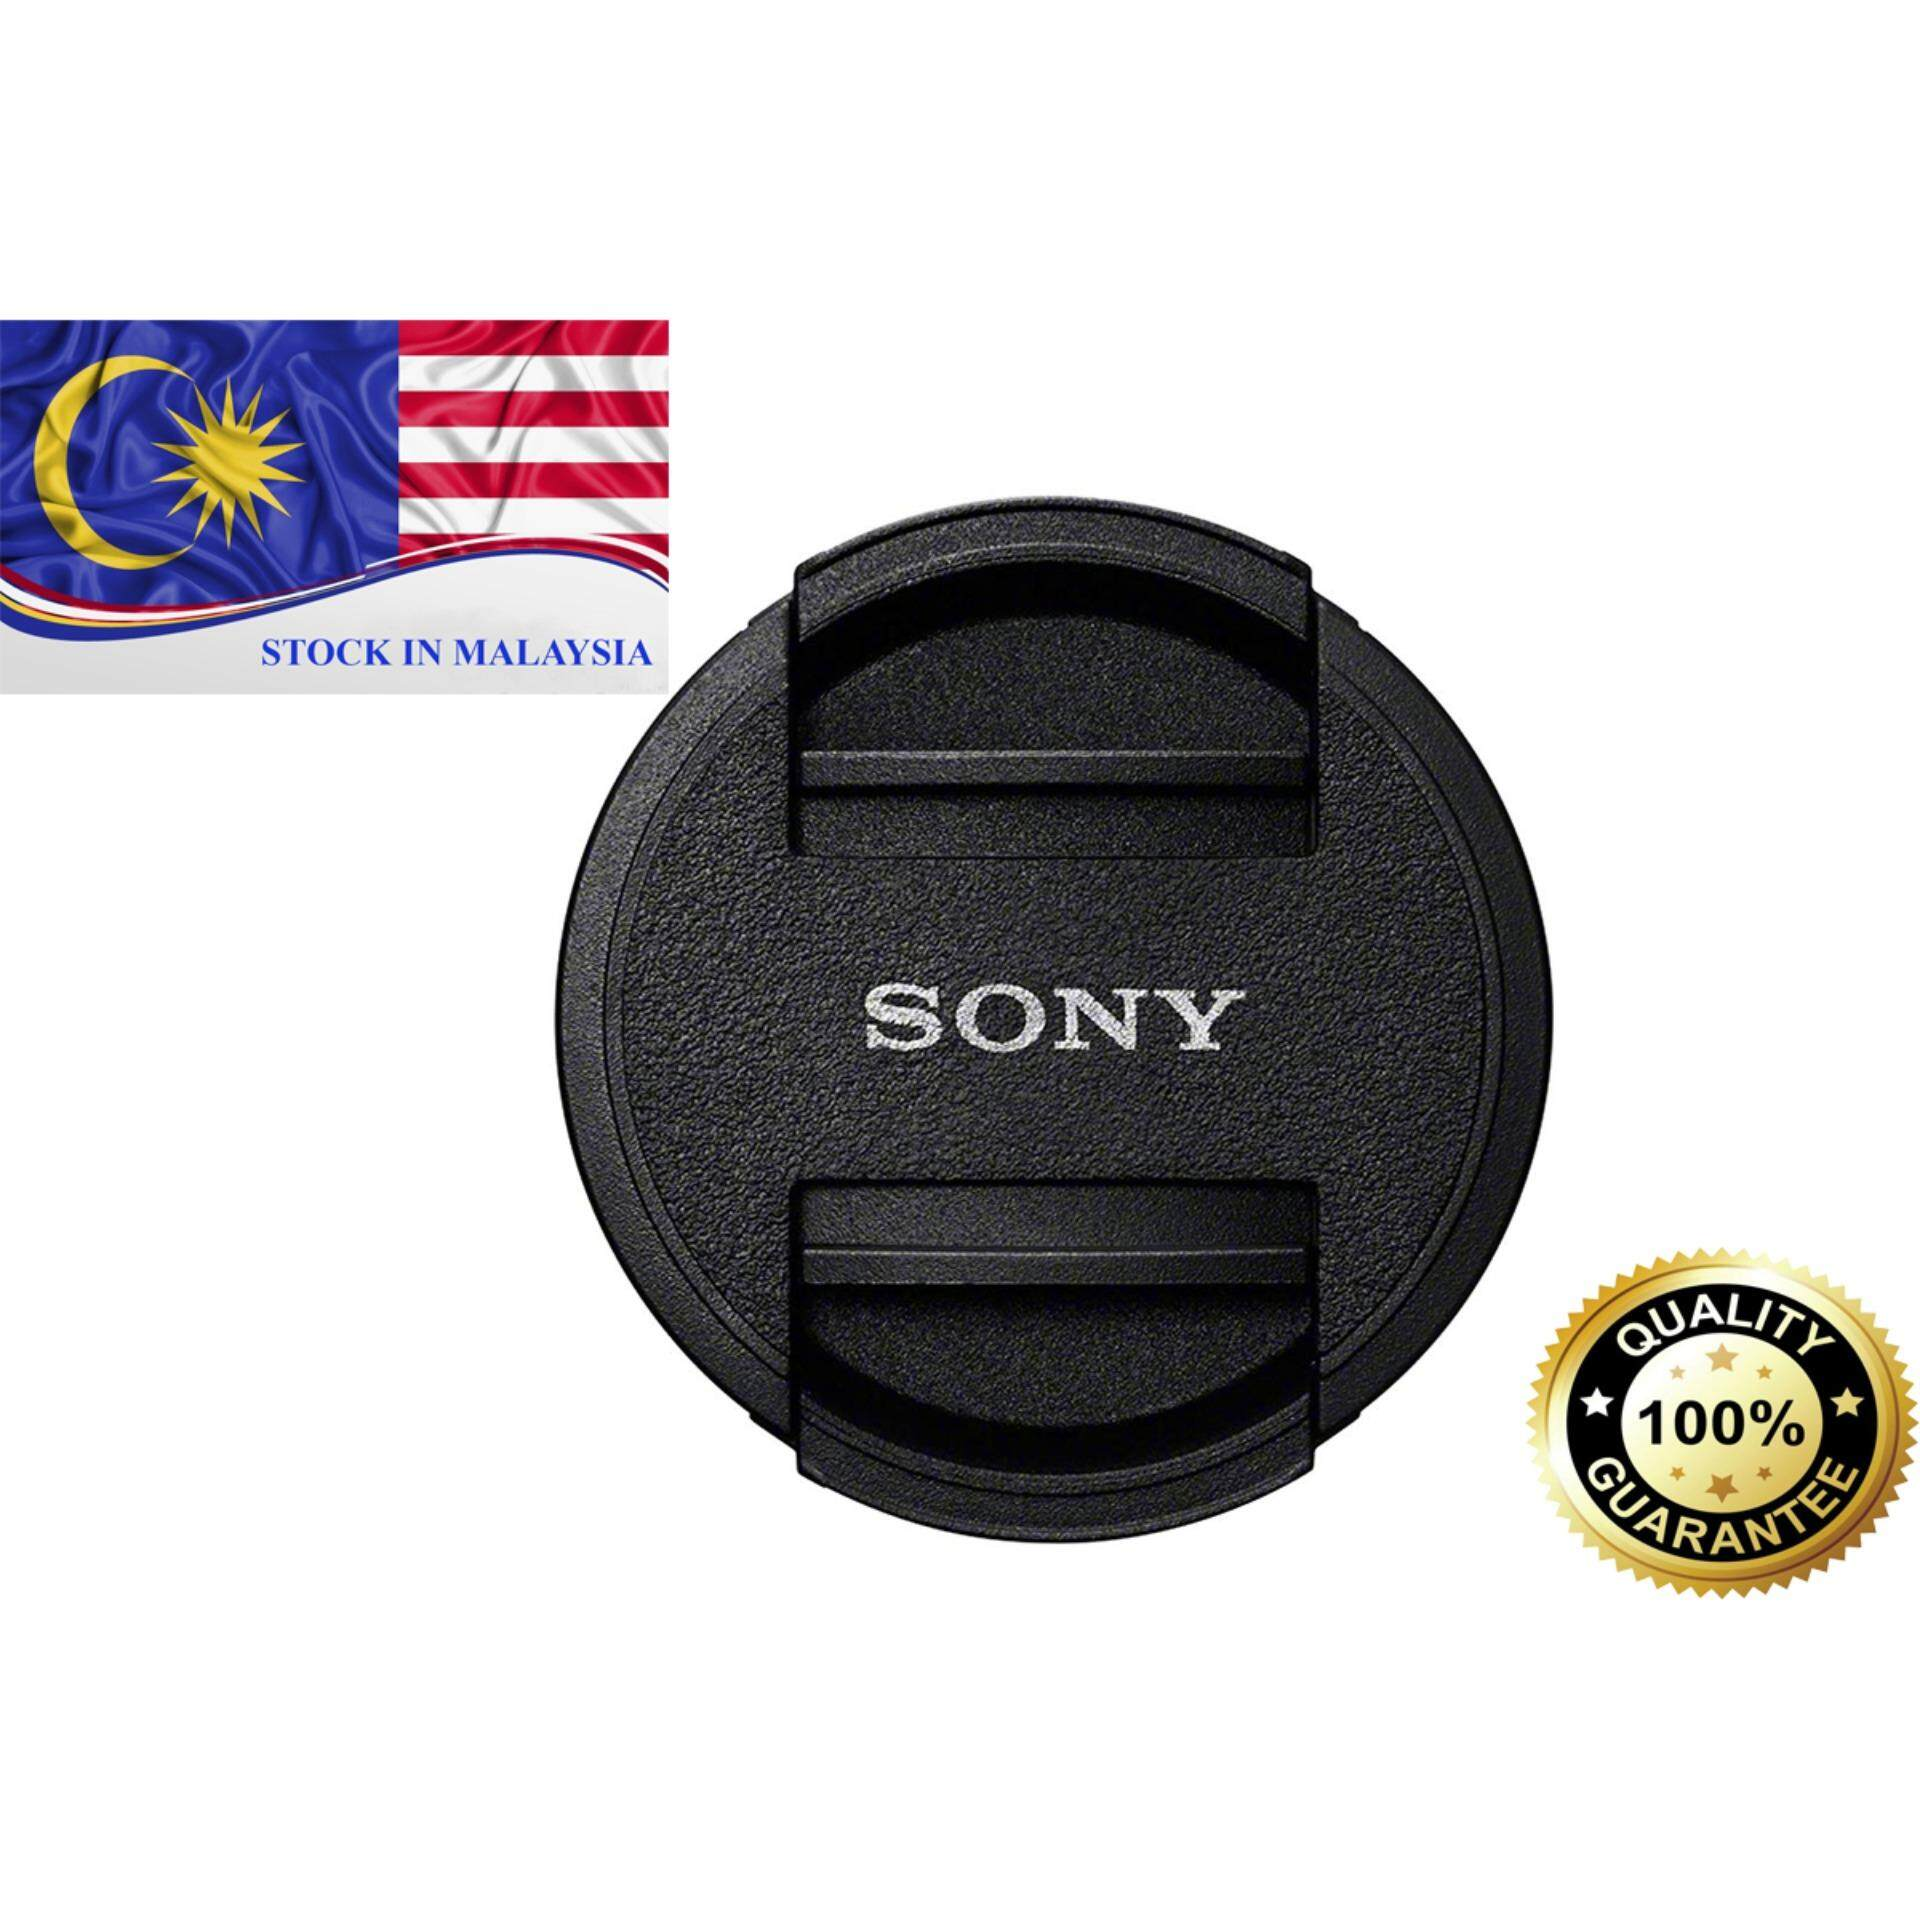 67mm Front Lens Cap For Sony By Image Photography.